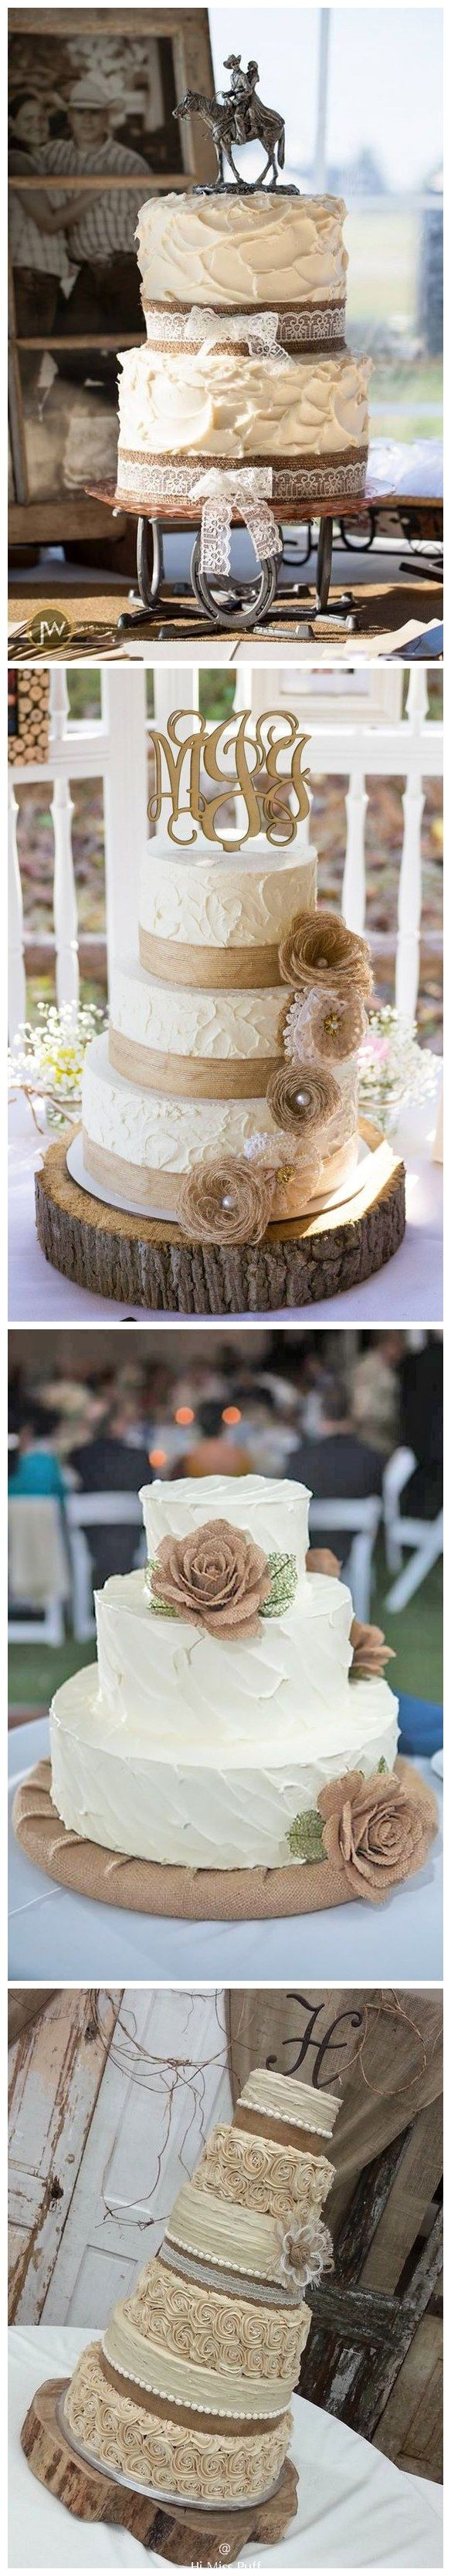 Rustic country burlap and lace wedding cakes / http://www.himisspuff.com/rustic-country-burlap-wedding-ideas/